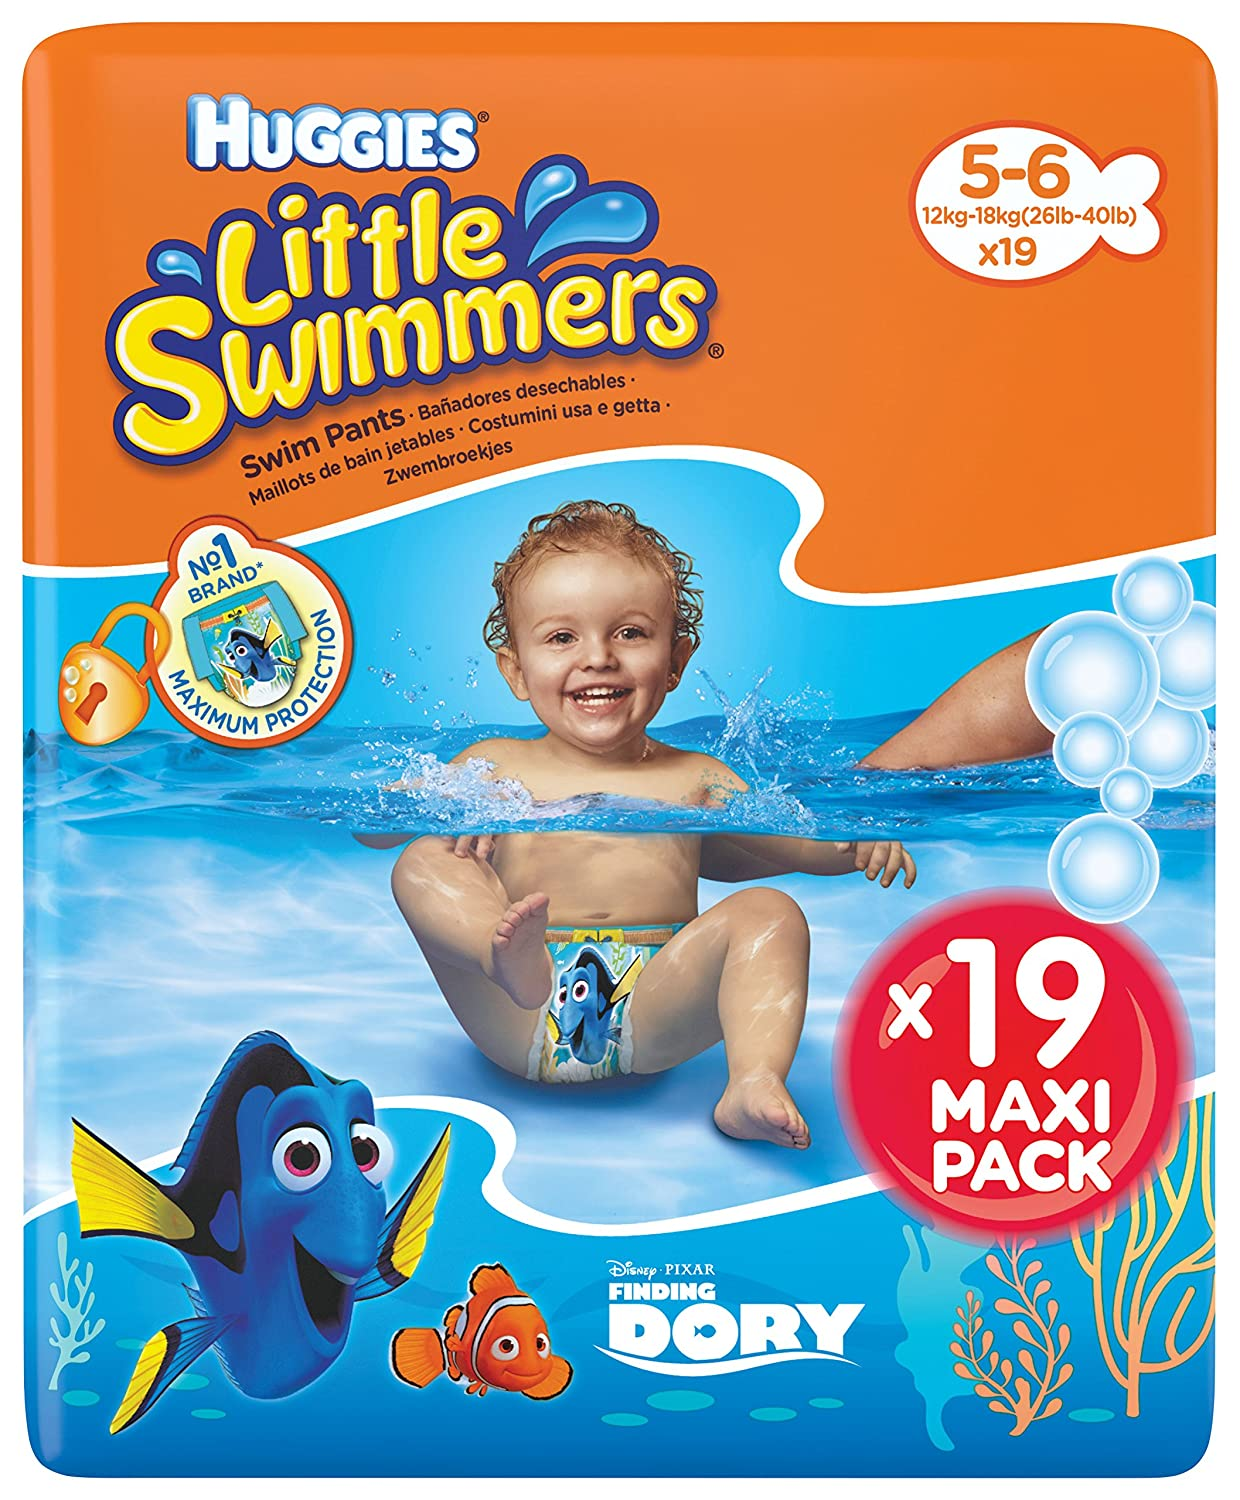 Huggies Little Swimmers Swim Nappies 5029053535852